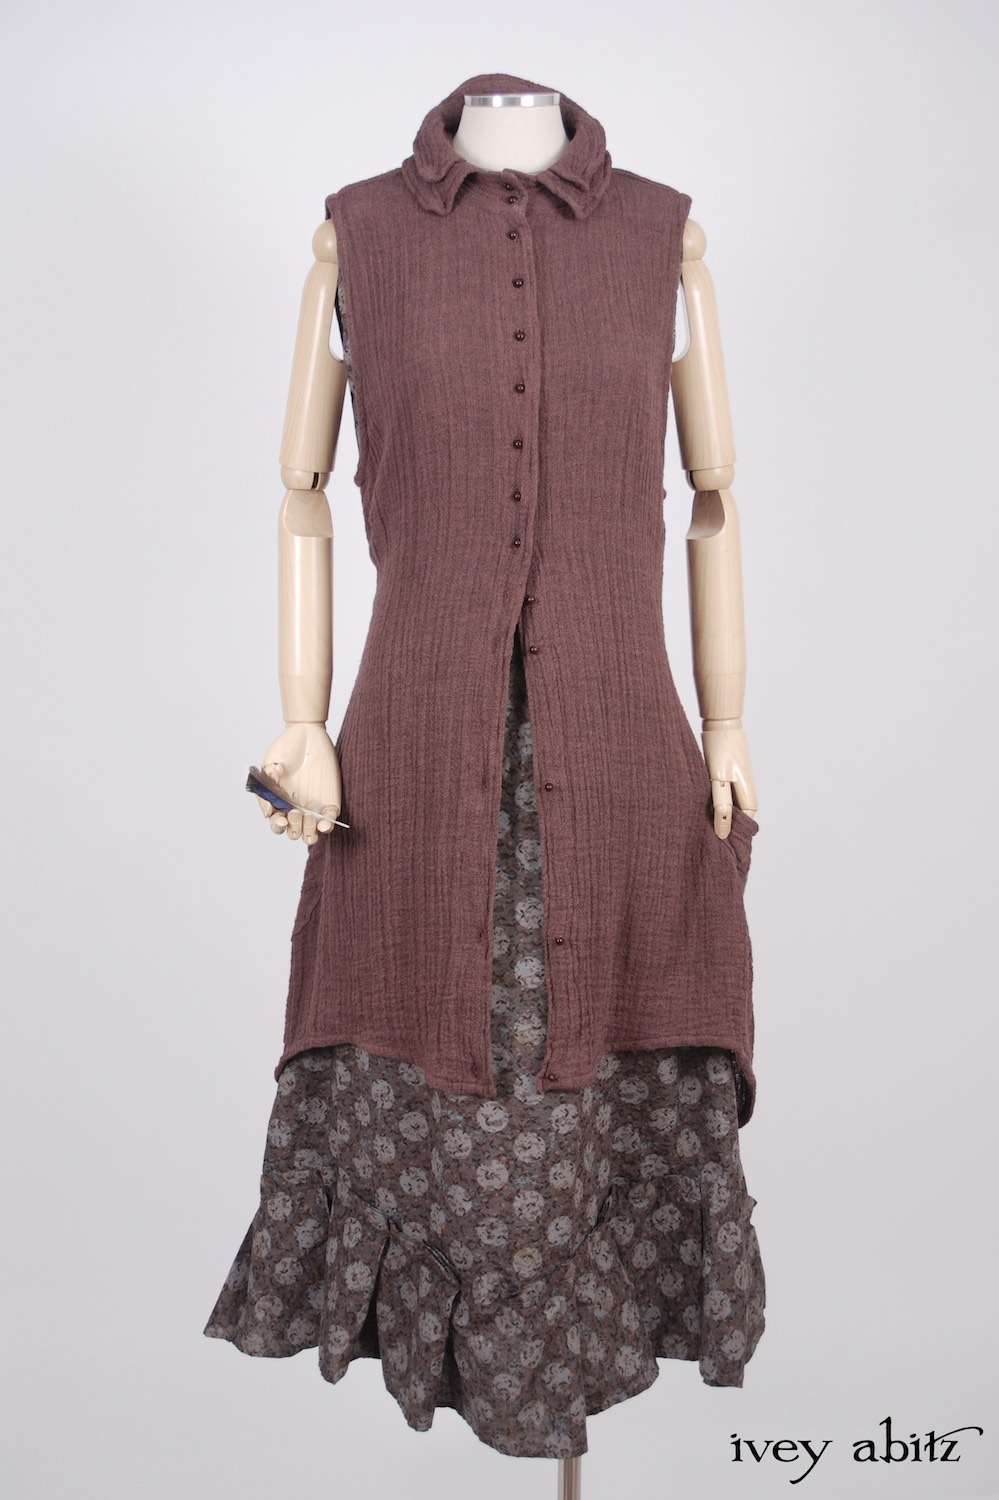 Ivey Abitz - Inglenook Vest in Hummingbird Double Layered Linen Scrim  - Inglenook Frock in Flock and Moon Cotton Voile, Low Water Length